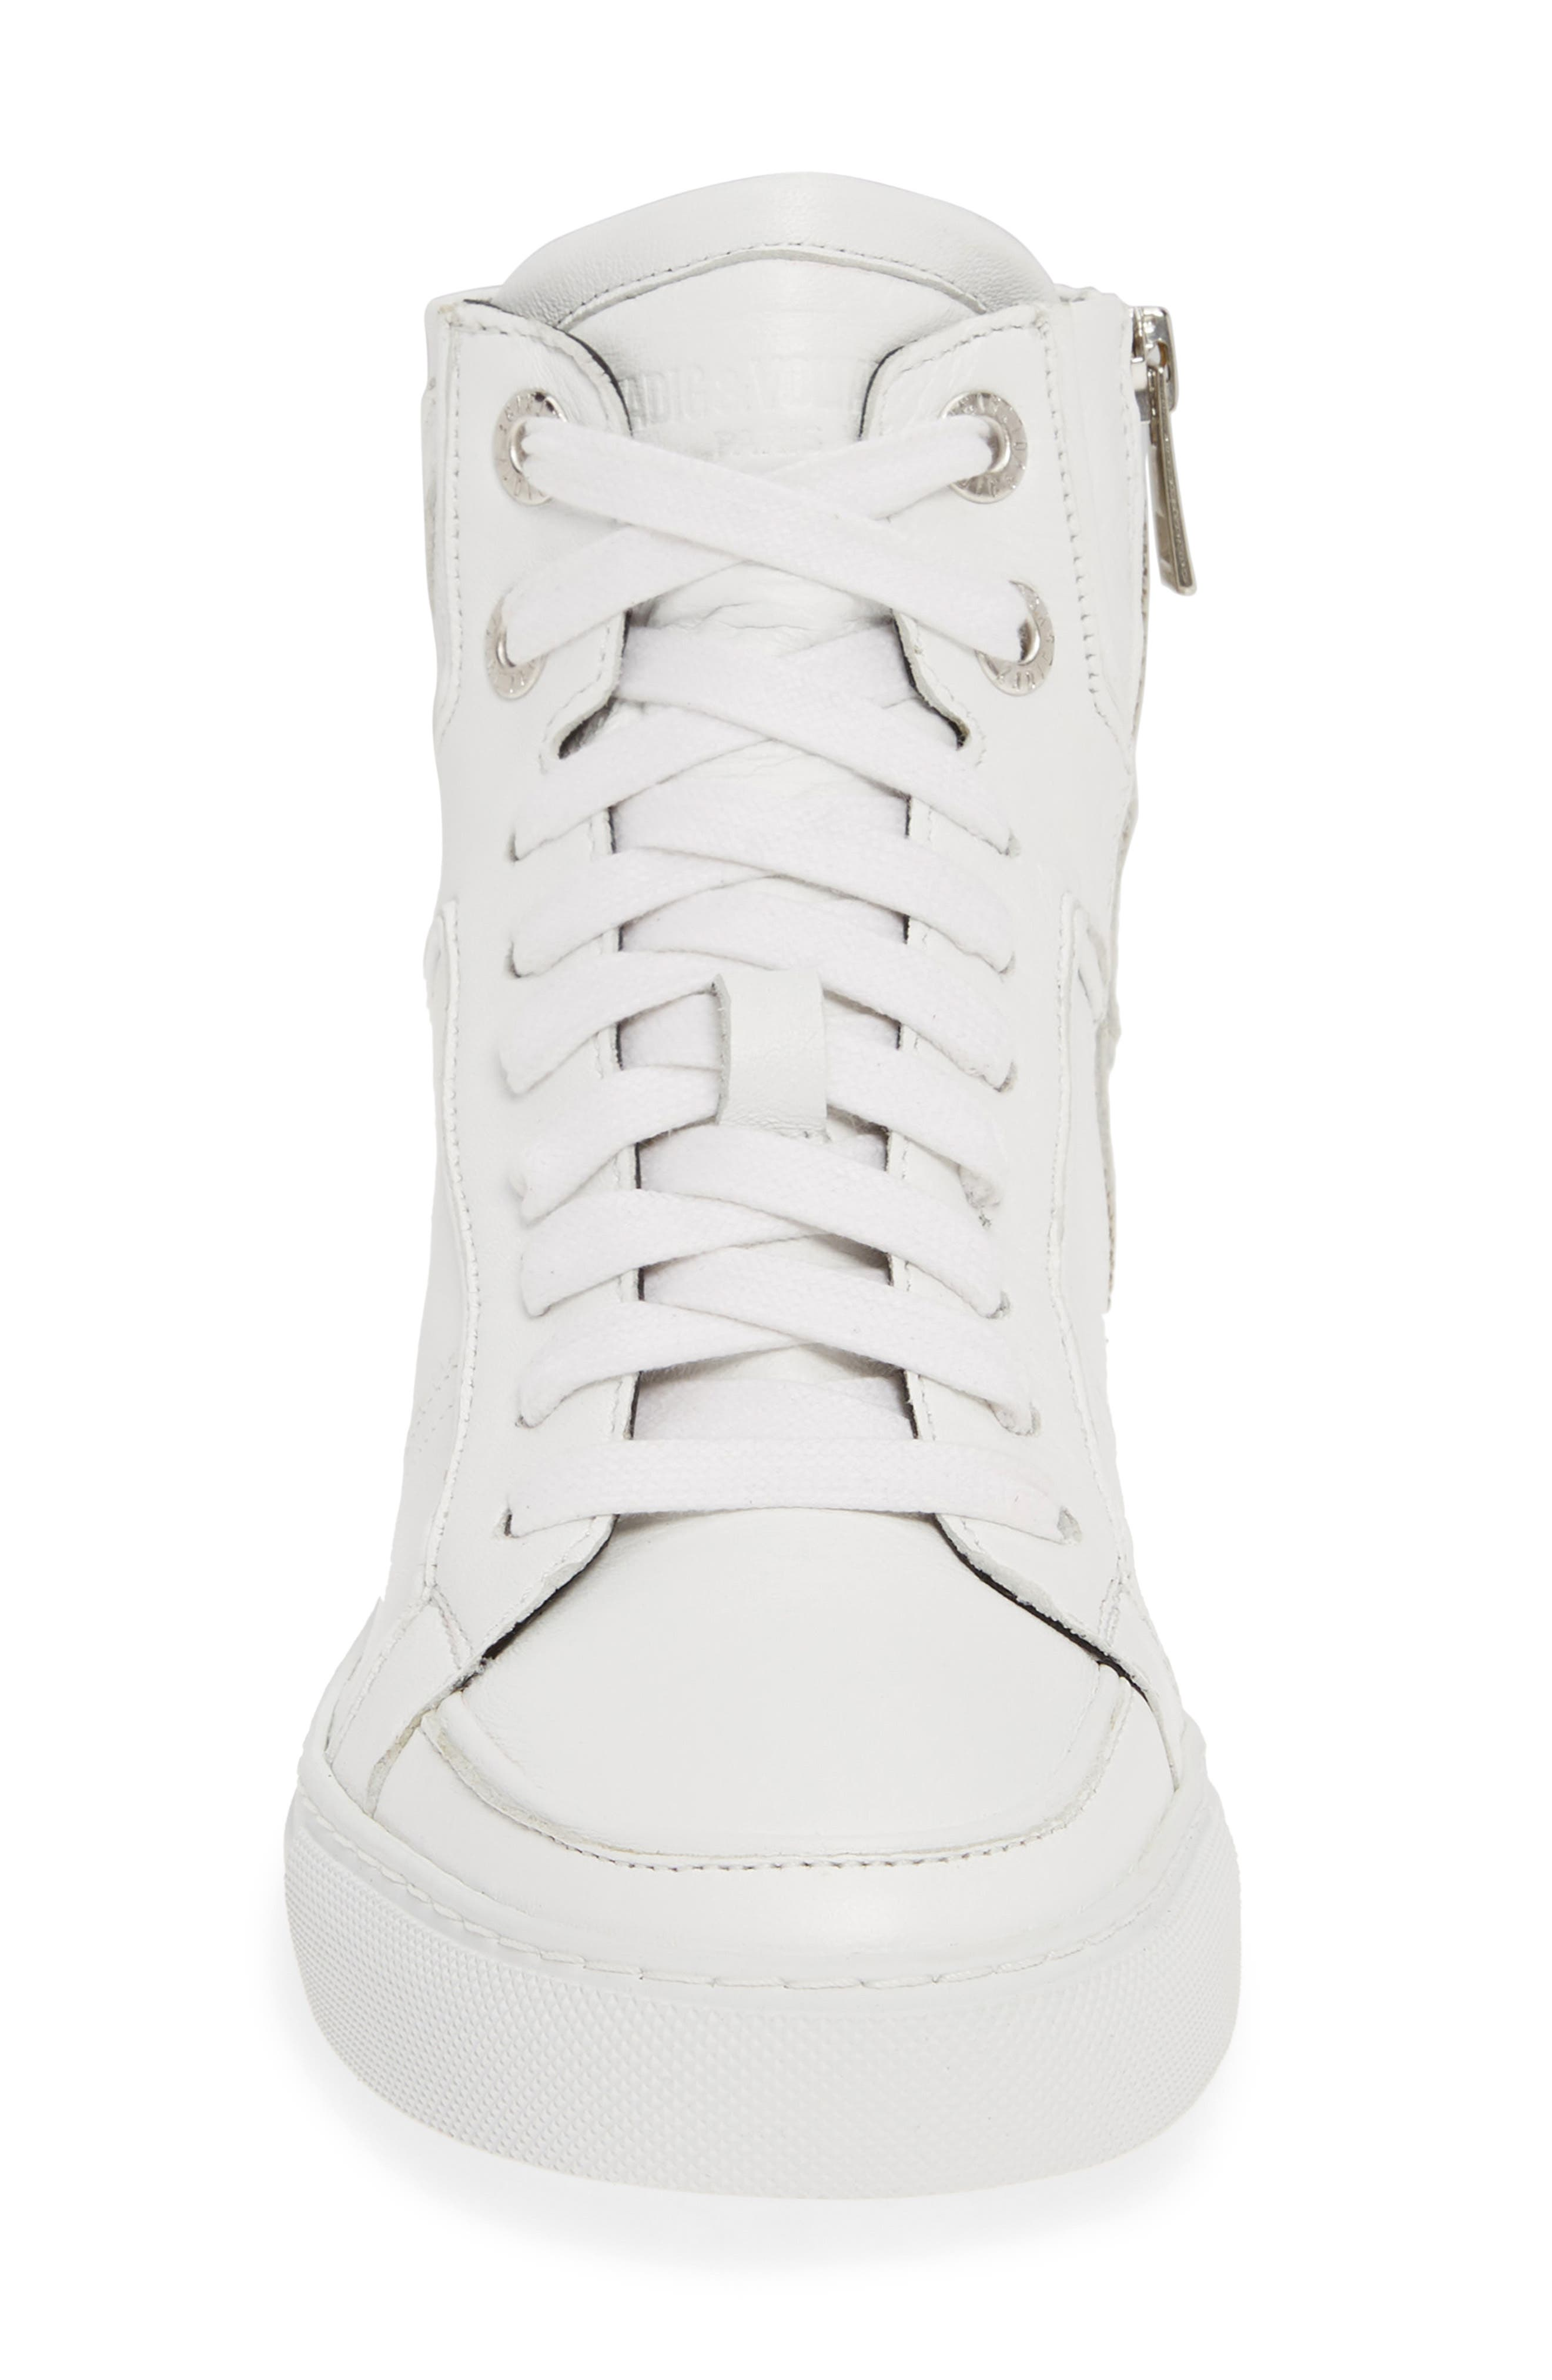 ZADIG & VOLTAIRE, Flash High Top Sneaker, Alternate thumbnail 4, color, BLANC